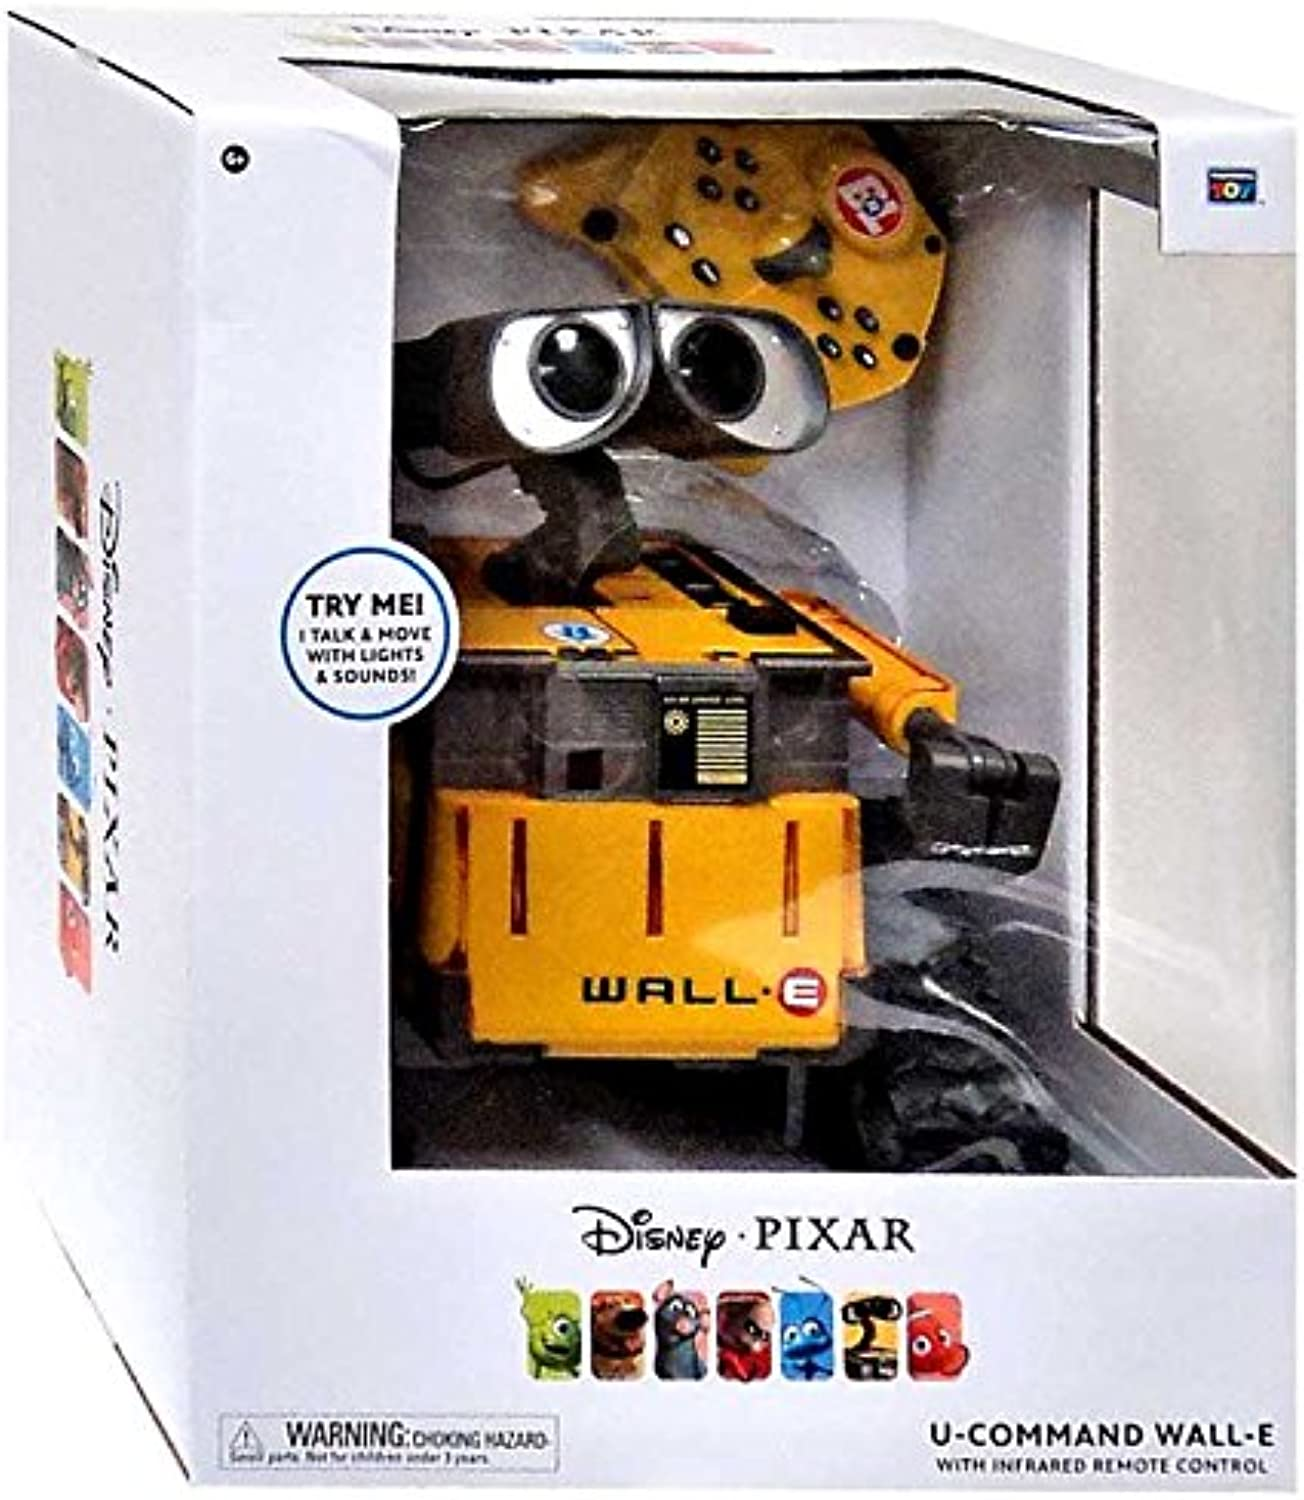 Pixar Collection Disney UCommand WallE Action Figure